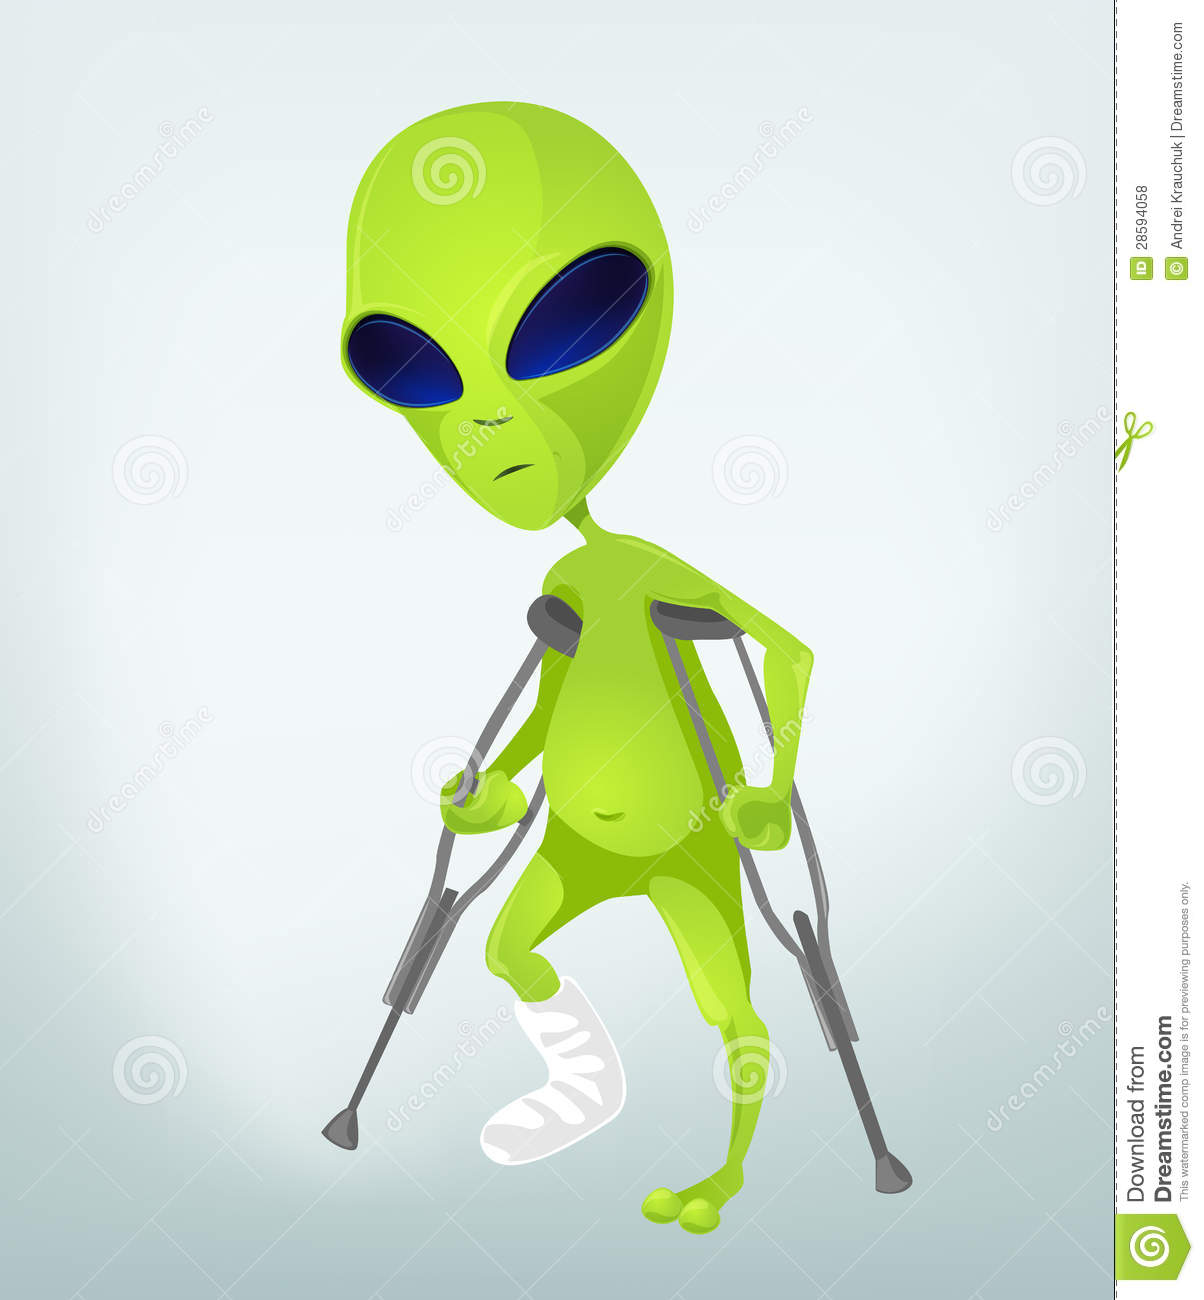 15 most funny alien pictures